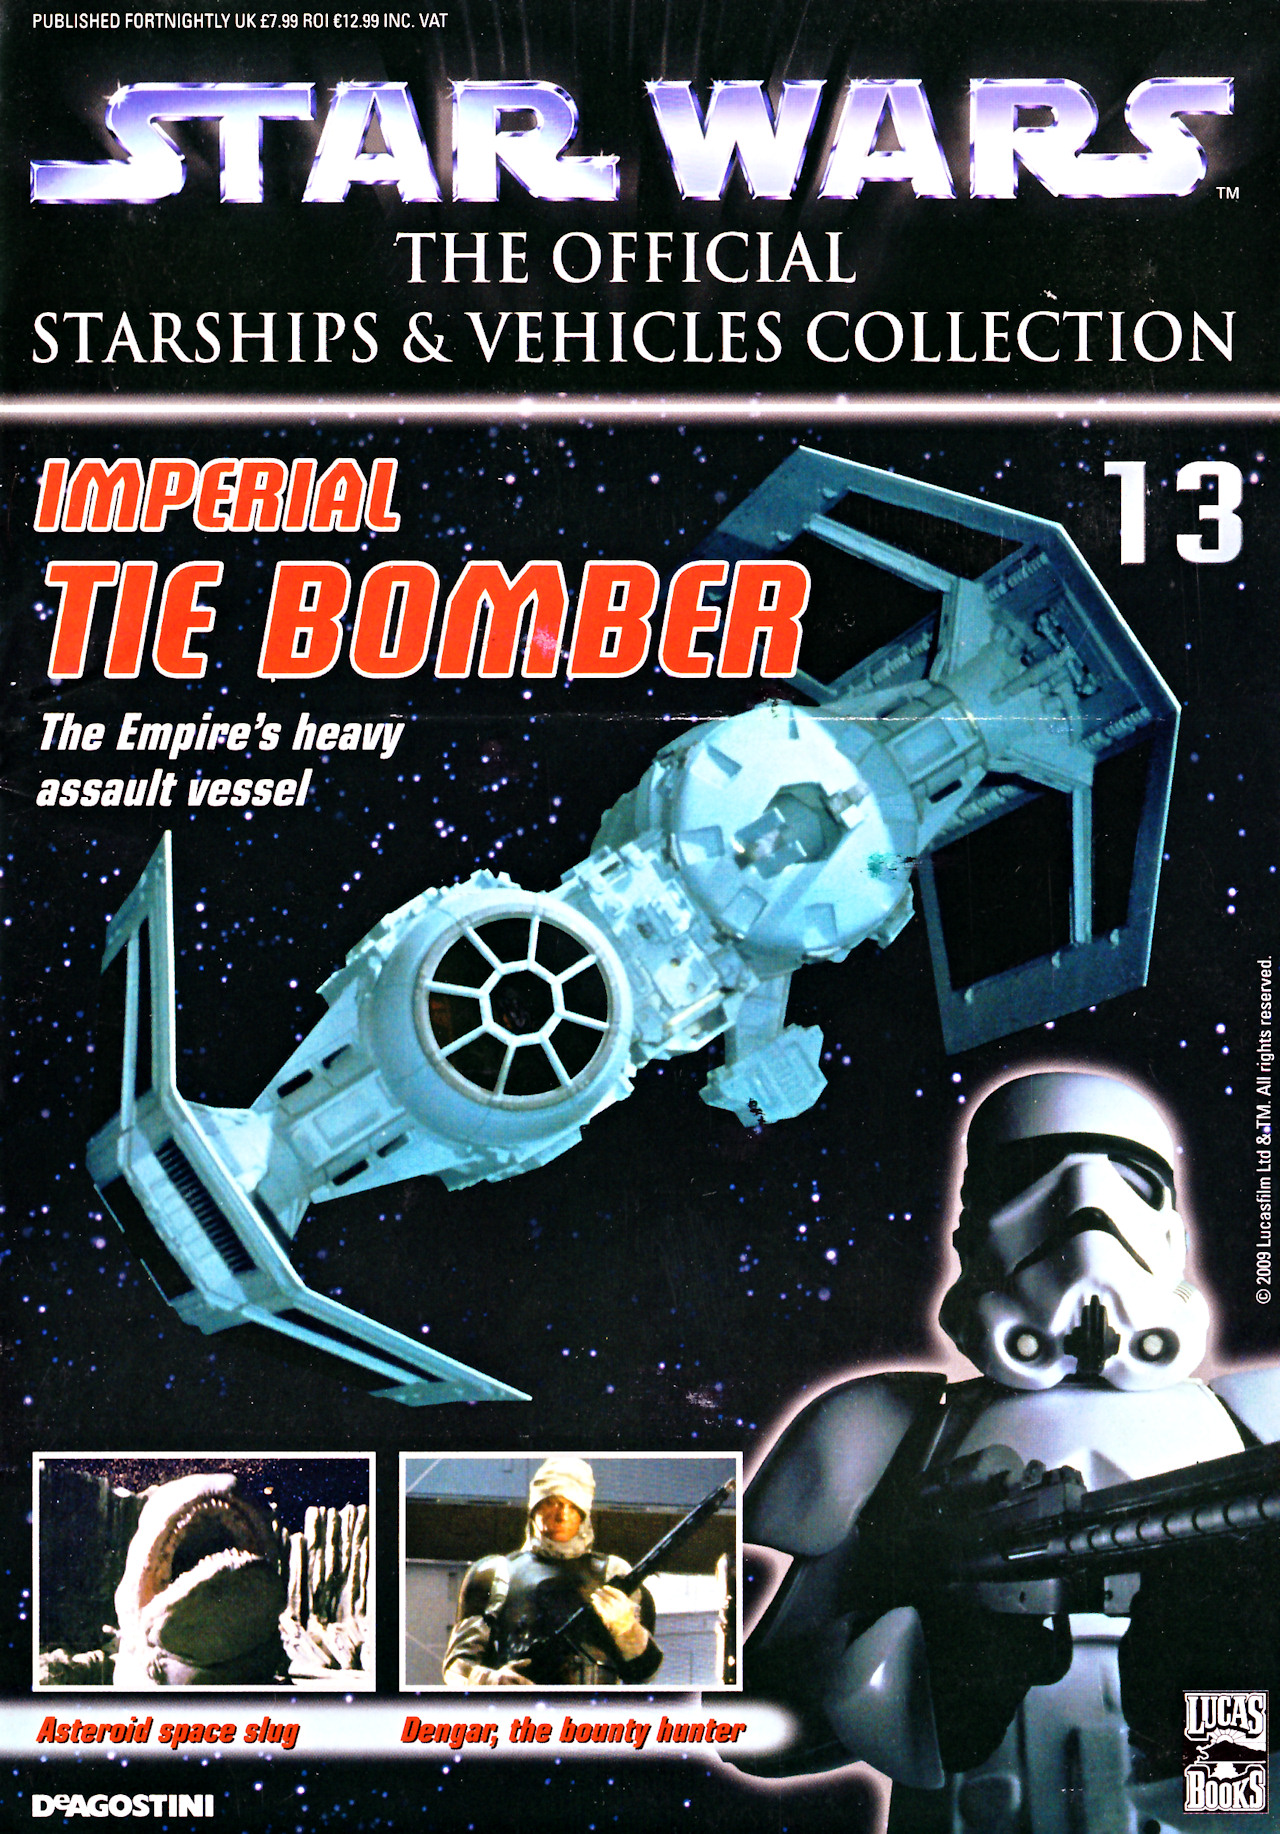 STAR WARS DEAGOSTINI STARSHIPS VEHICLES COLLECTION ISSUE 13 IMPERIAL TIE BOMBER